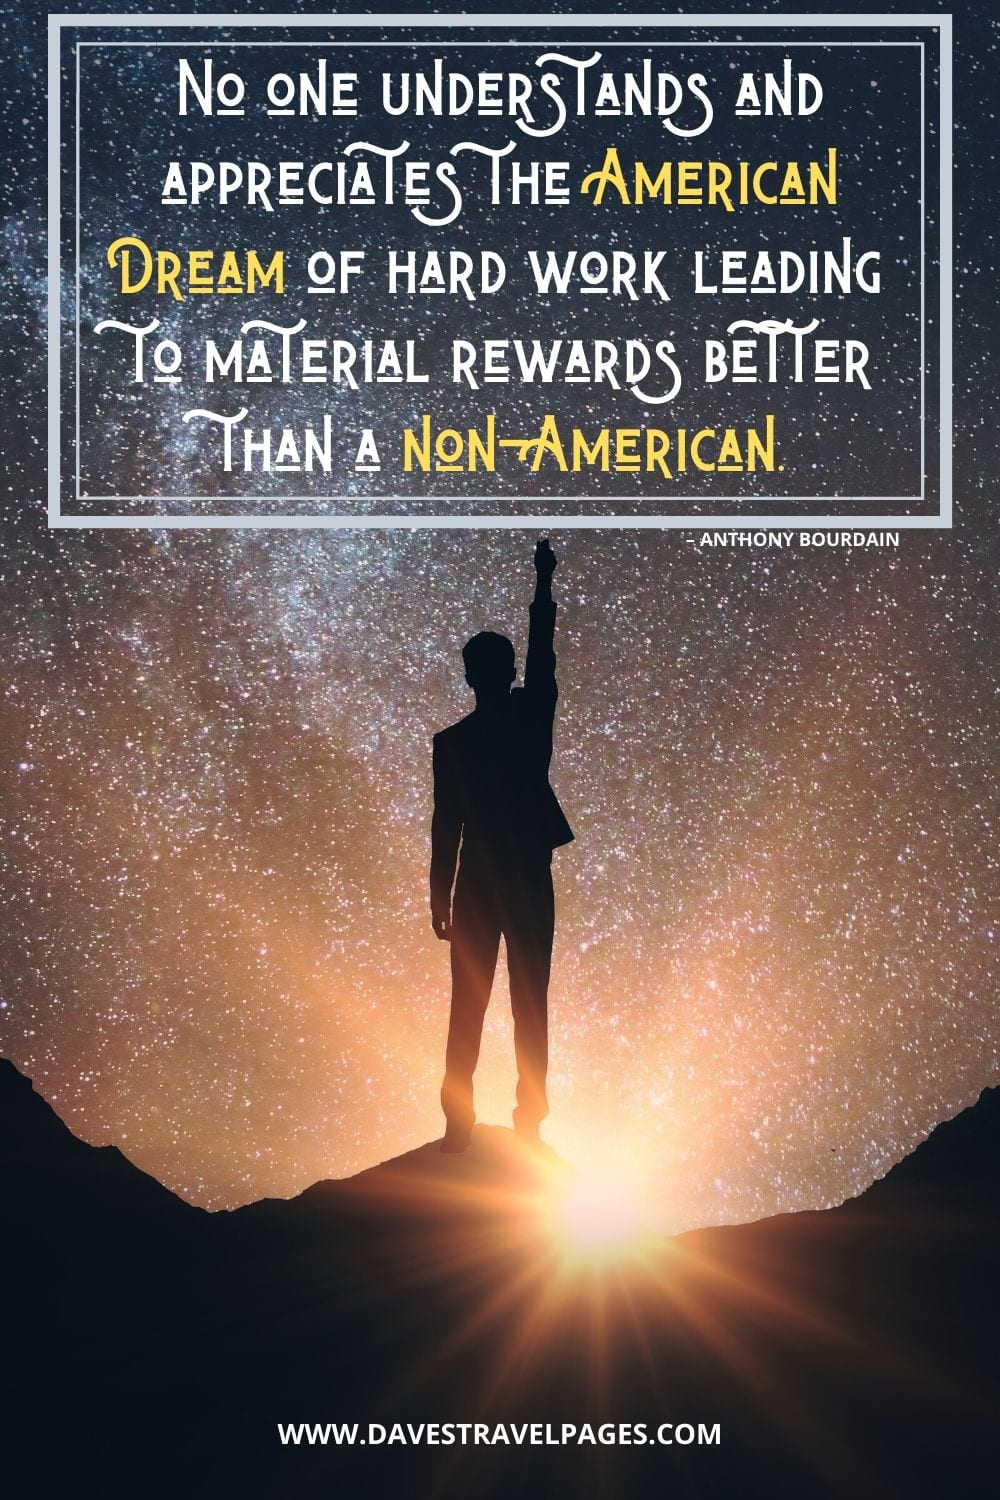 """""""No one understands and appreciates the American Dream of hard work leading to material rewards better than a non-American."""" – Anthony Bourdain"""